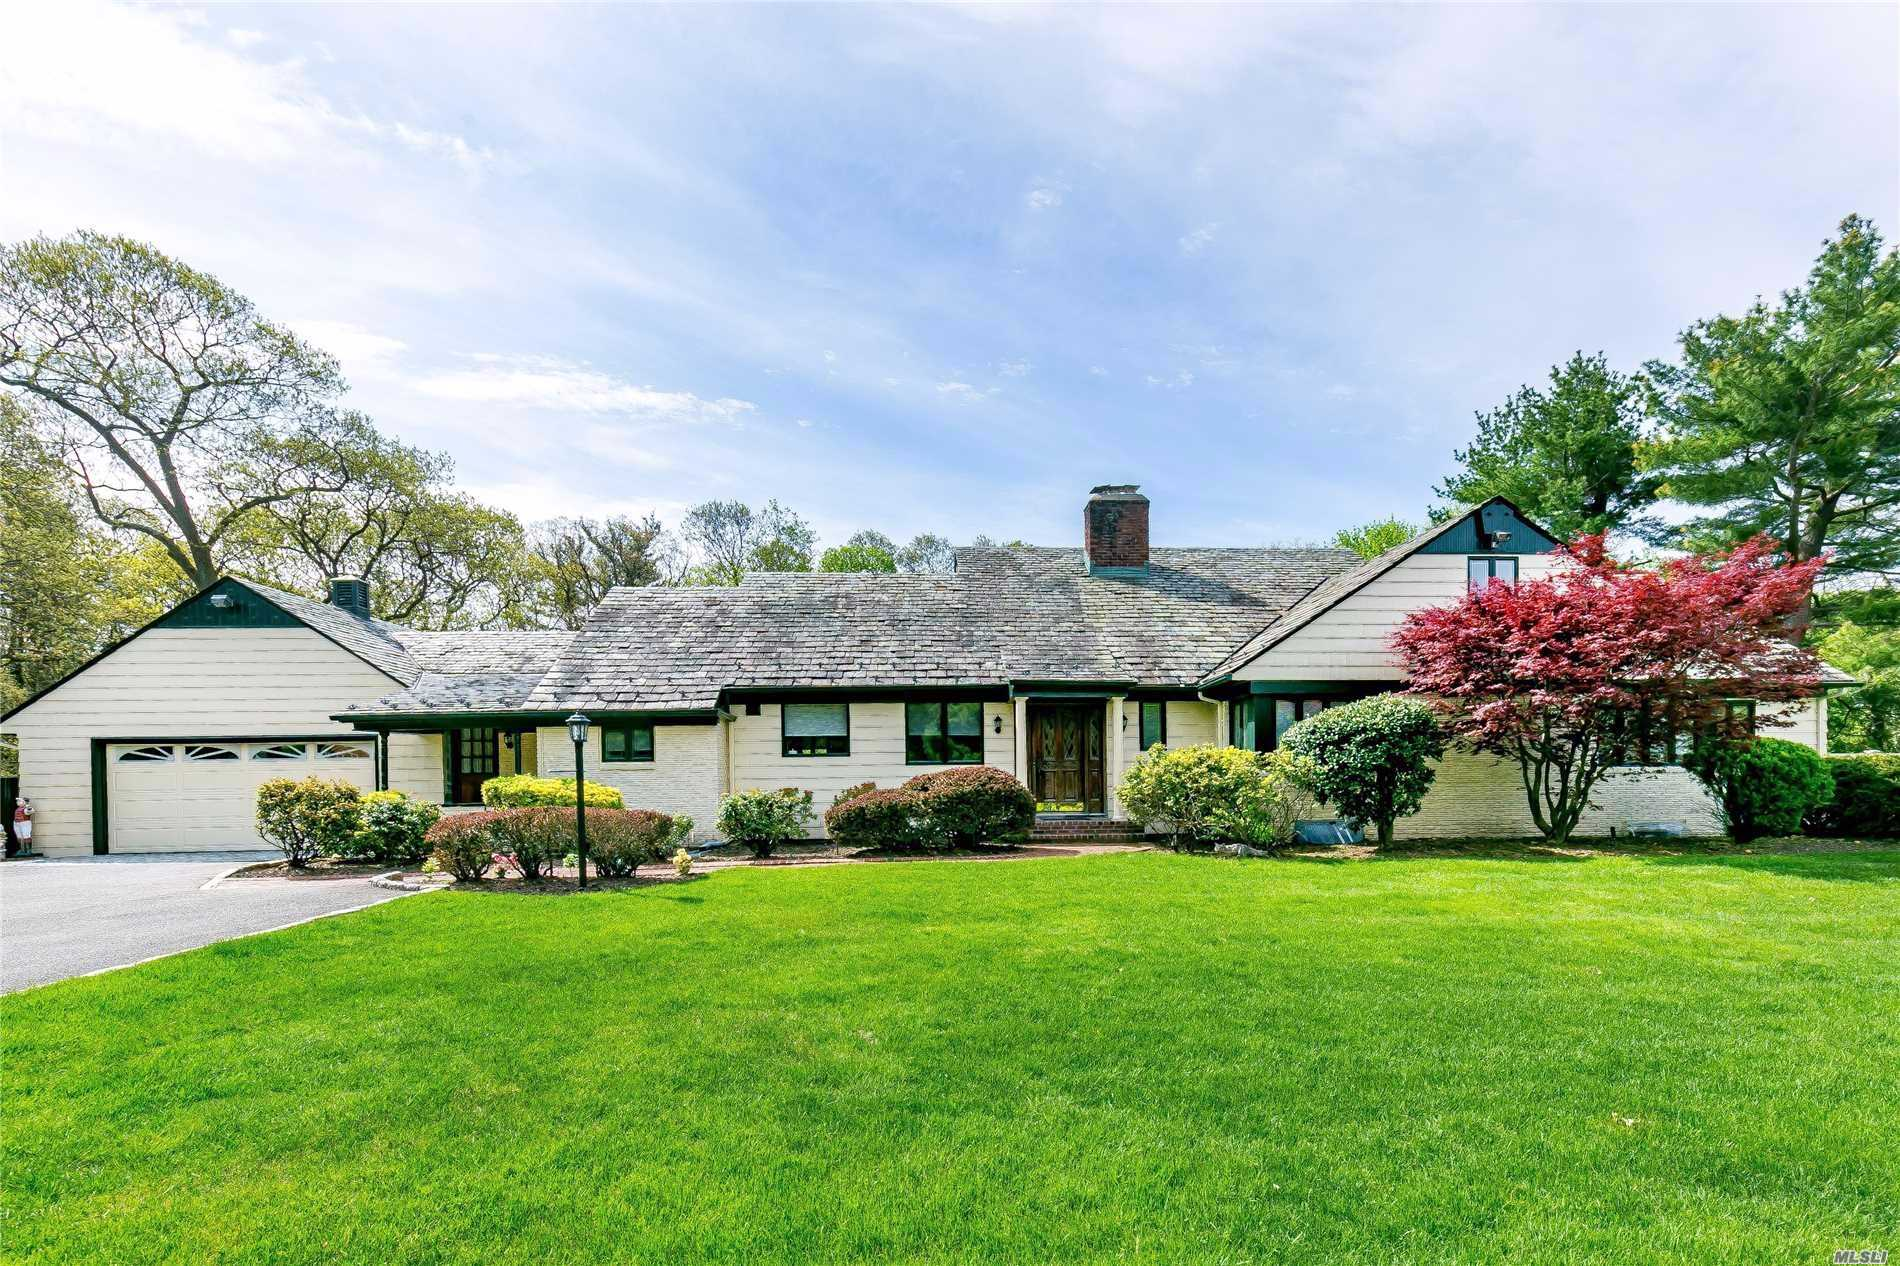 Rare Find! Custom Built Center Hall Farm Ranch On One Are+, Boasts 5Br, 4.5Bth, Eik, Fdr, Huge Lr/Fpl, Den, Sunroom, Huge Finished Basement, Ose, Beautiful Property. Decks, Patio, Gazebo, Pool. Choice Of Roslyn Or Wheatly Sd, Membership In The Fabulous East Hills Park, Surrounded With Multi Million Dollar Homes.